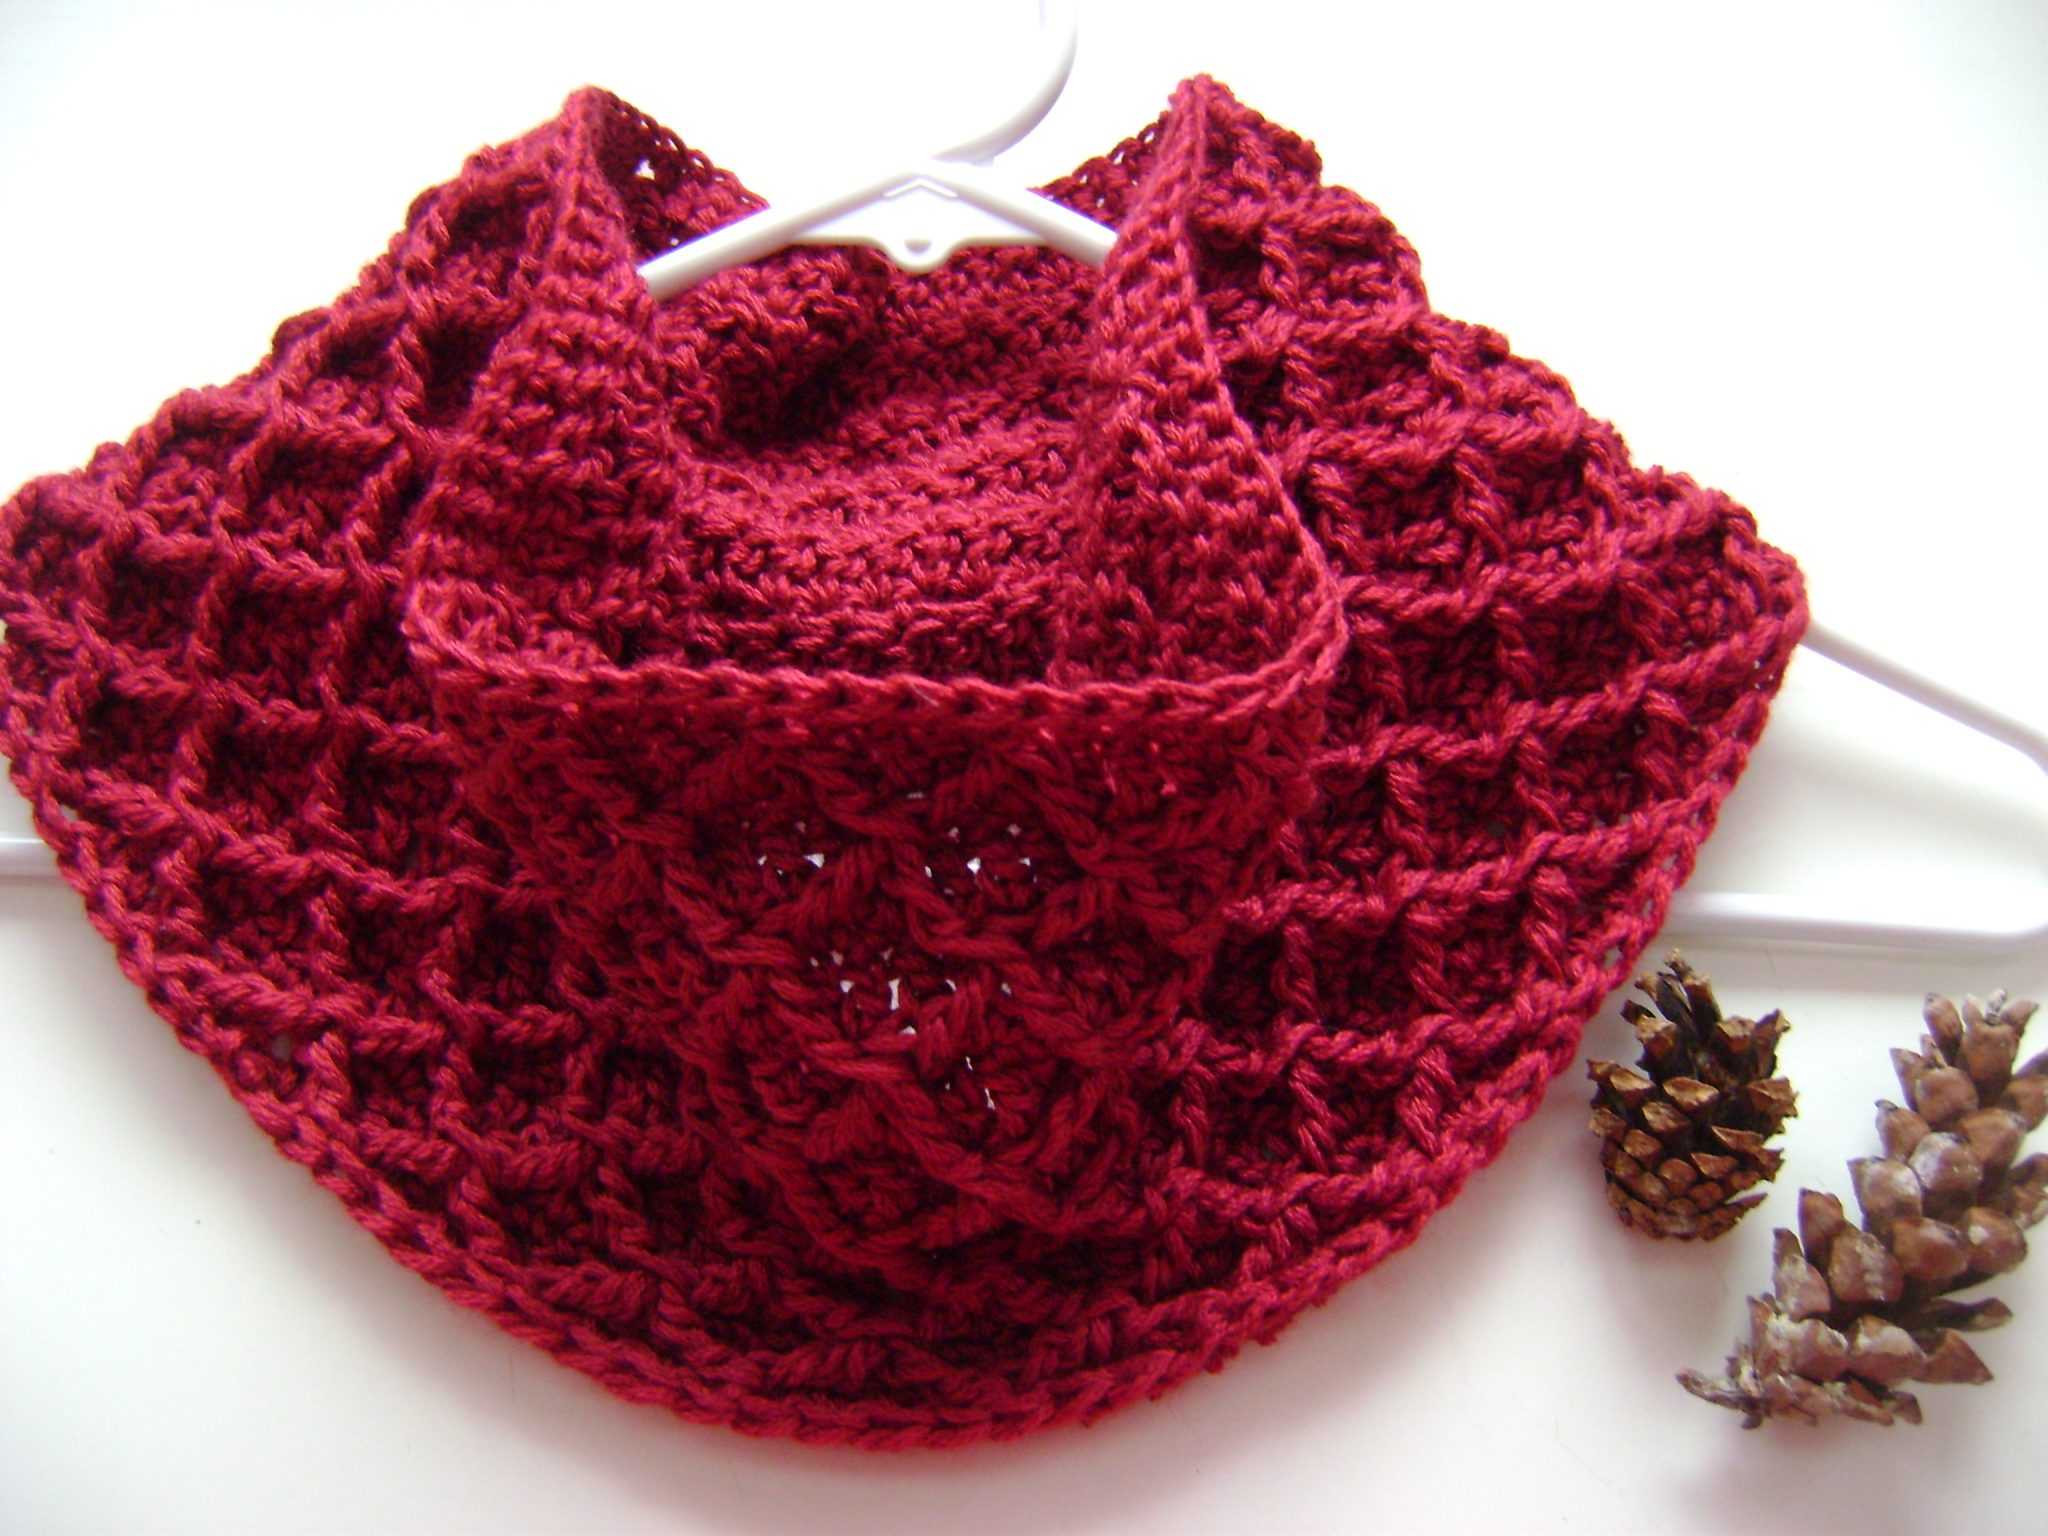 Crochet Patterns Videos Free : free crochet cowl pattern diamonds cables winter scarf